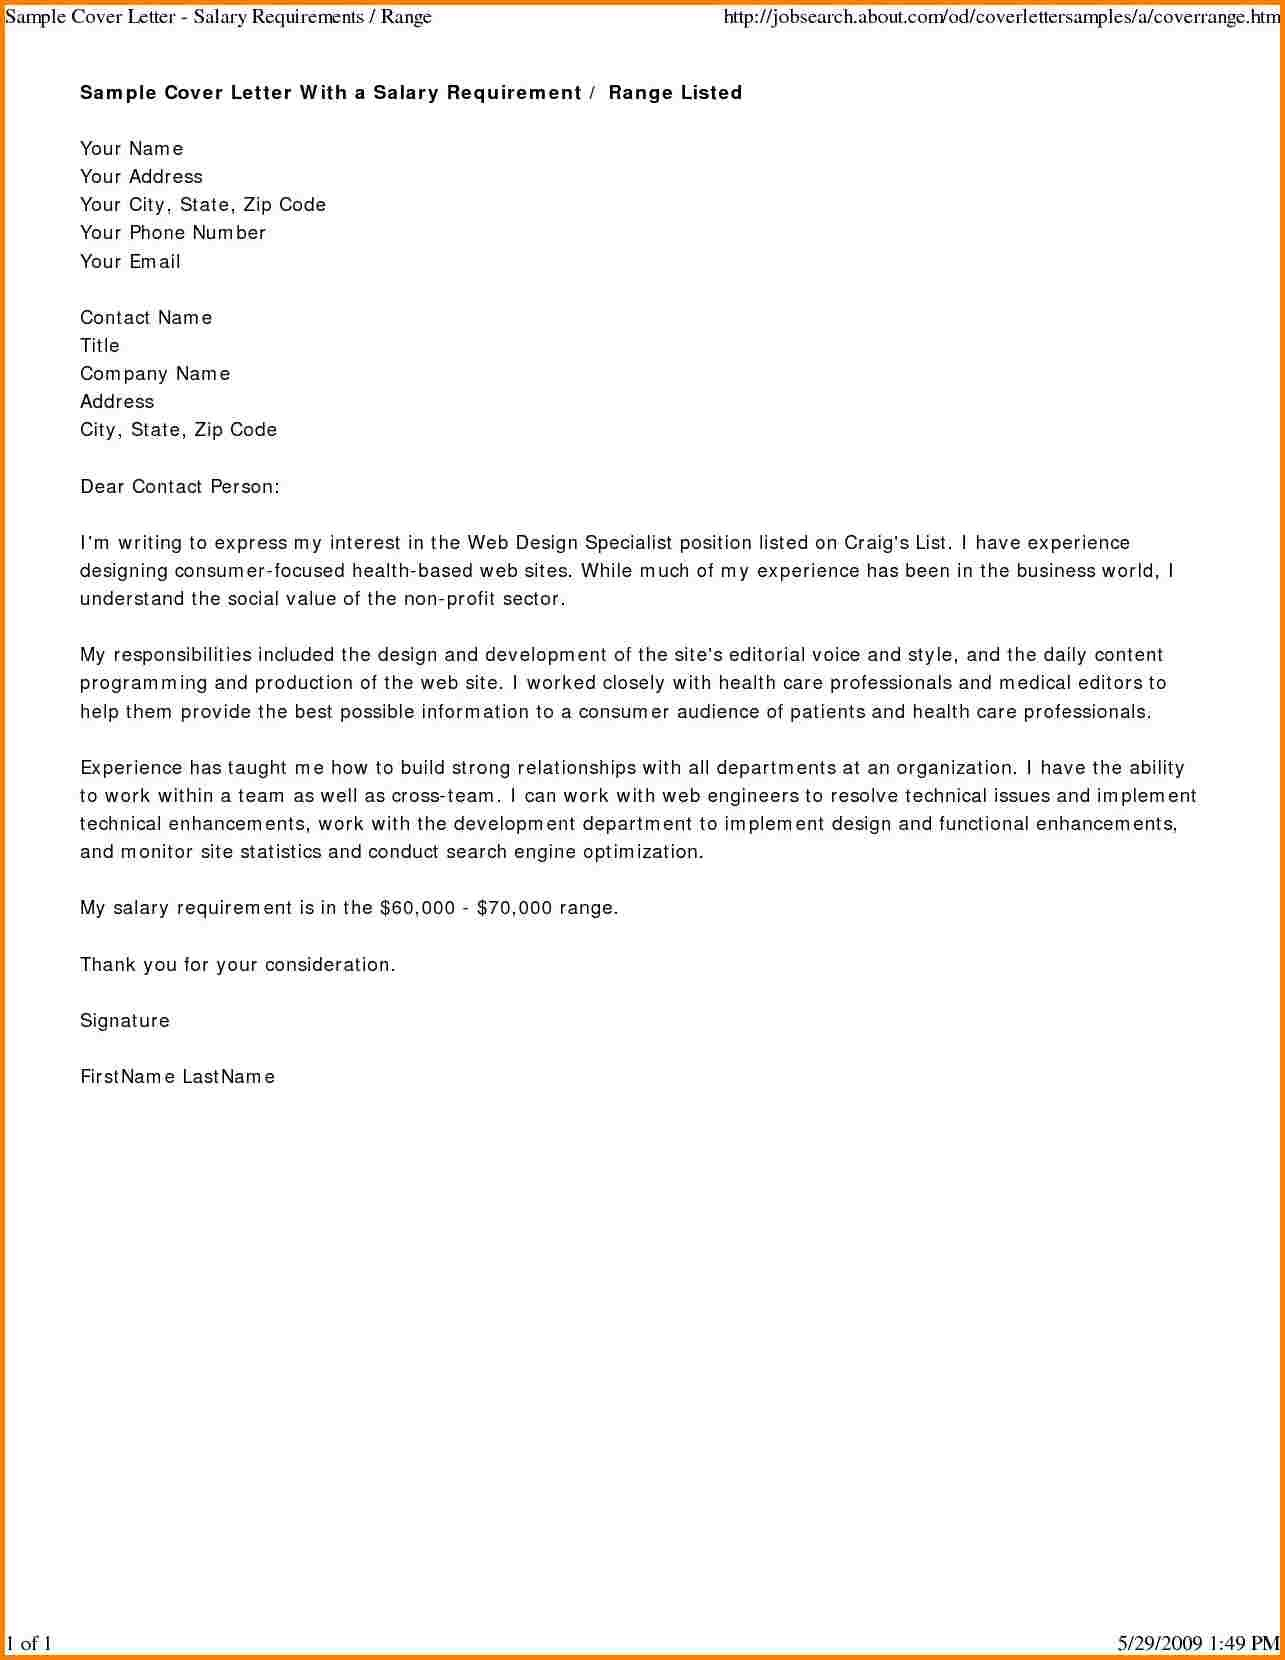 Final Demand Letter Template - Request Letter format for Correction In Name Fresh 23 Payroll